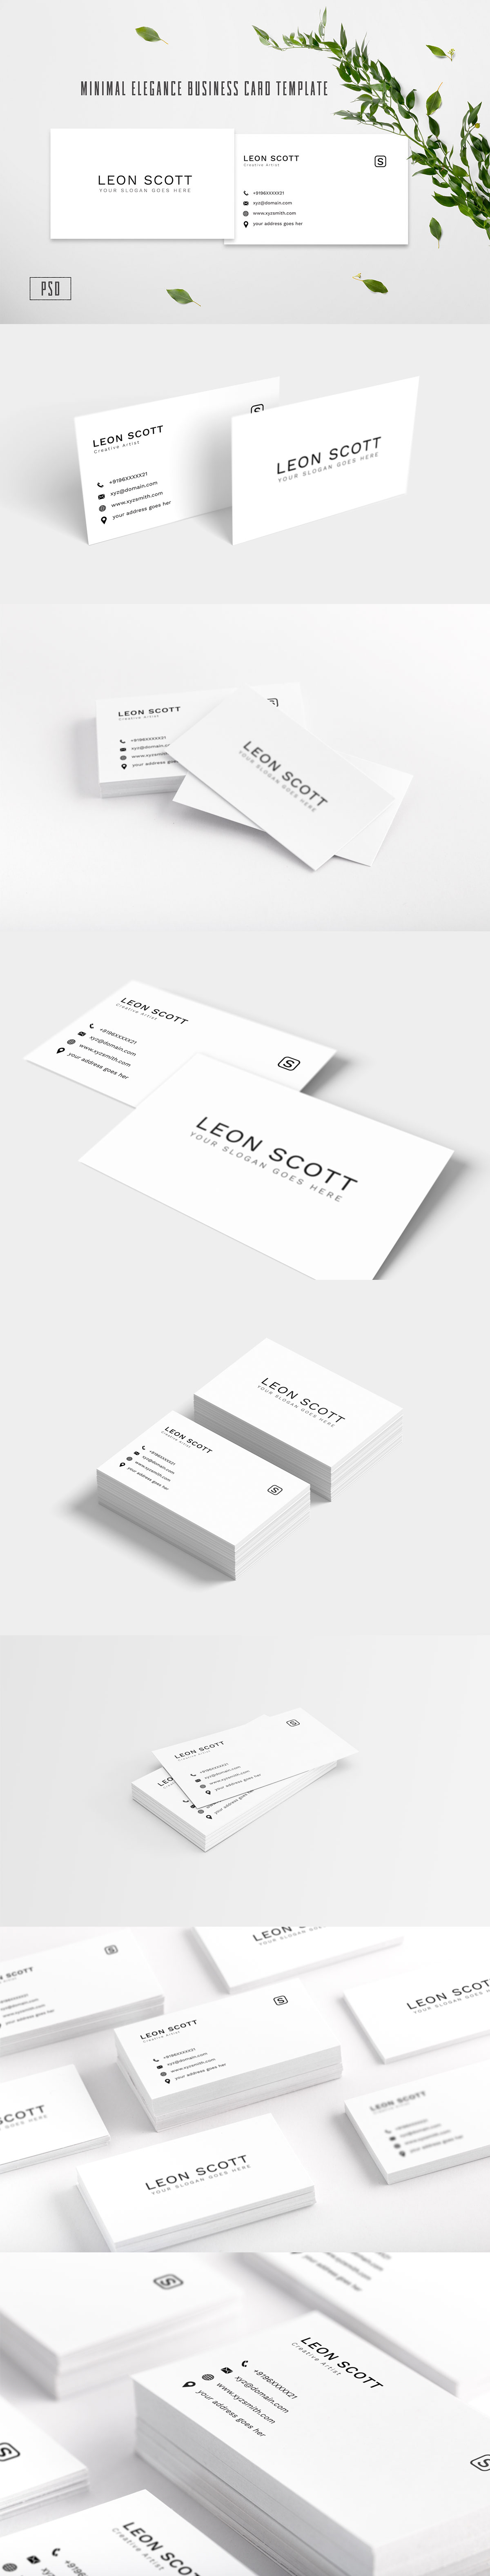 Free Minimal #Elegance #Business #Card Template is a clean yet simple black and white minimalist style business card template. It includes 2 PSD files with built-in smart object feature in CMYK color mode at 300 DPI resolution.